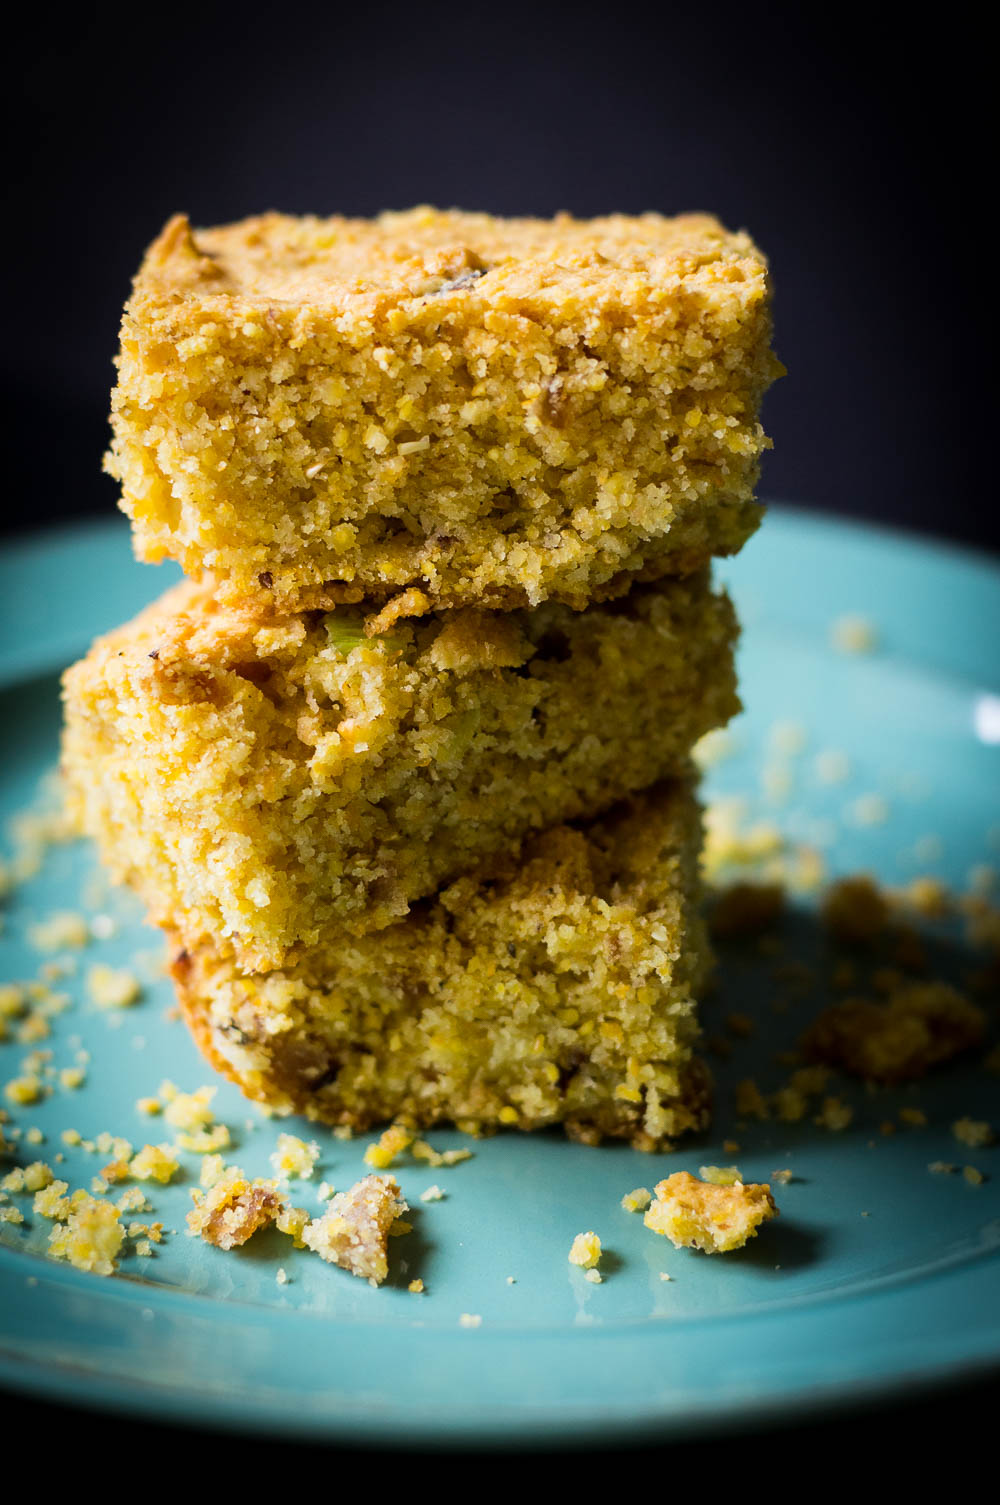 coarse grind cracklin' cornbread made without gluten, dairy, or eggs